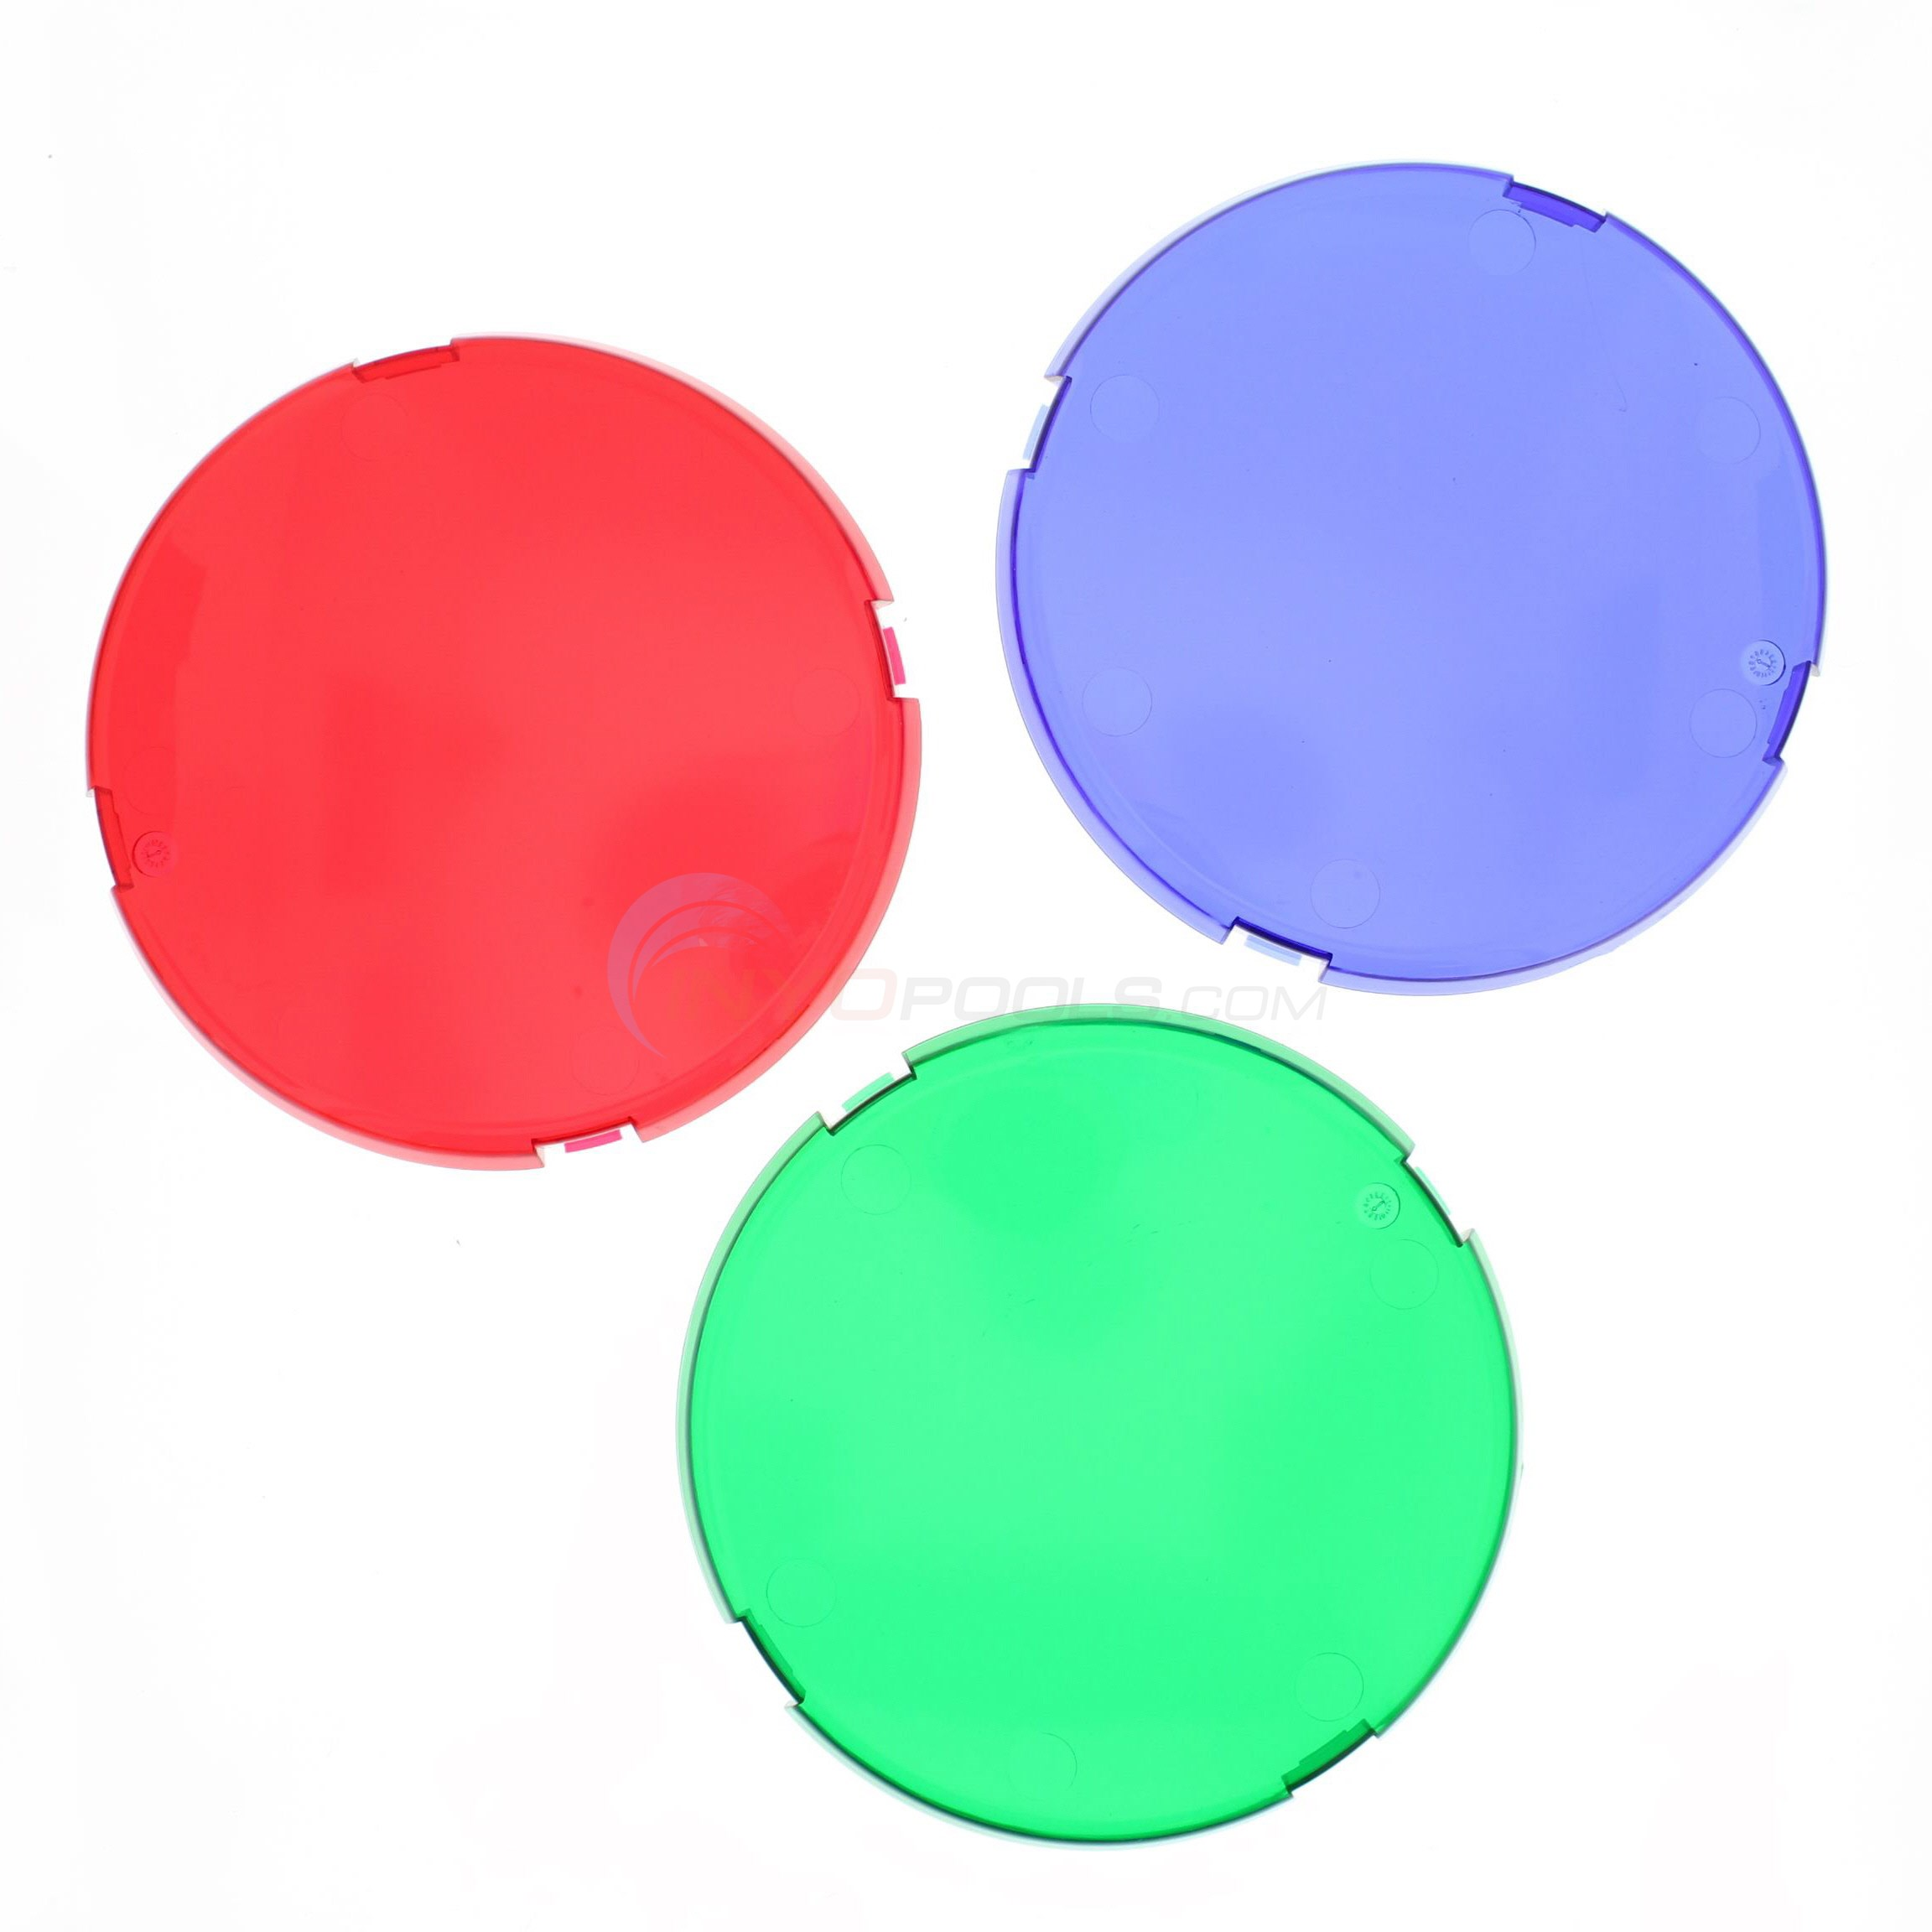 Pentair Aqualumin III Lens Cover - (set Of 3 Colors) (600140) - 3527-13